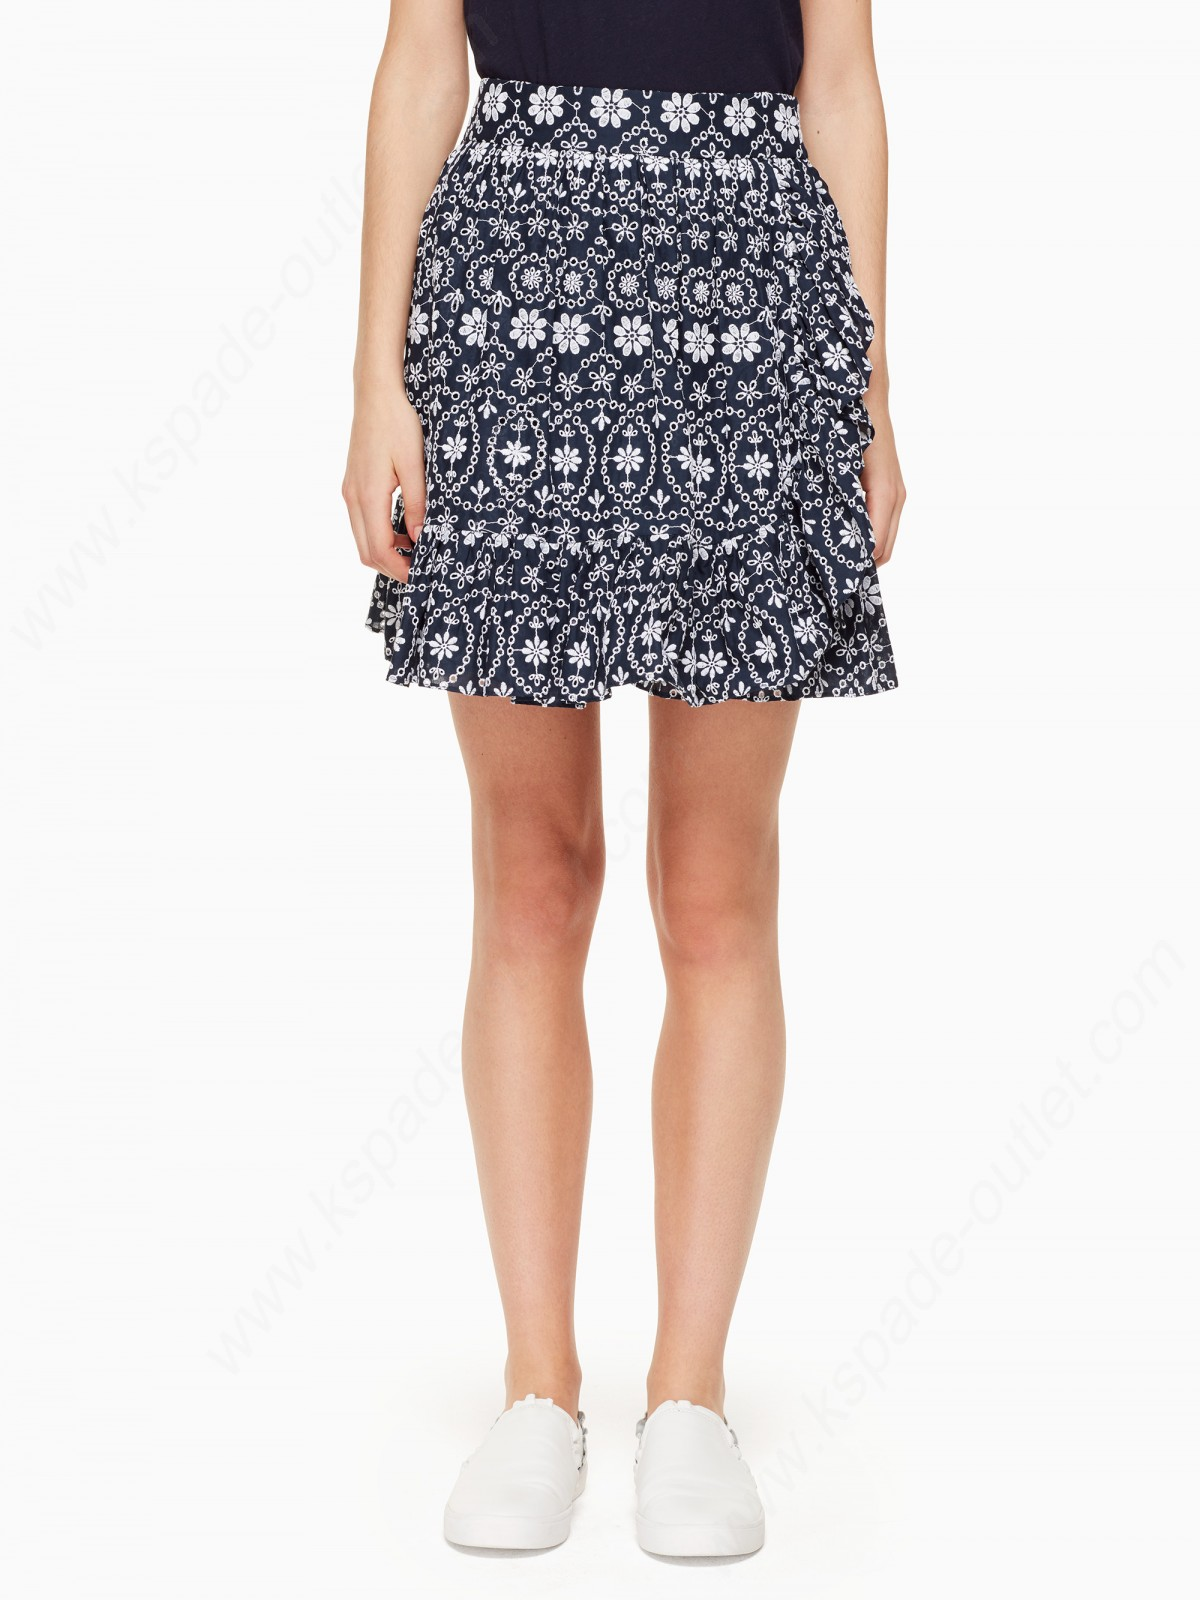 Kate Spade Lady Clothing Eyelet Wrap Skirt - -0